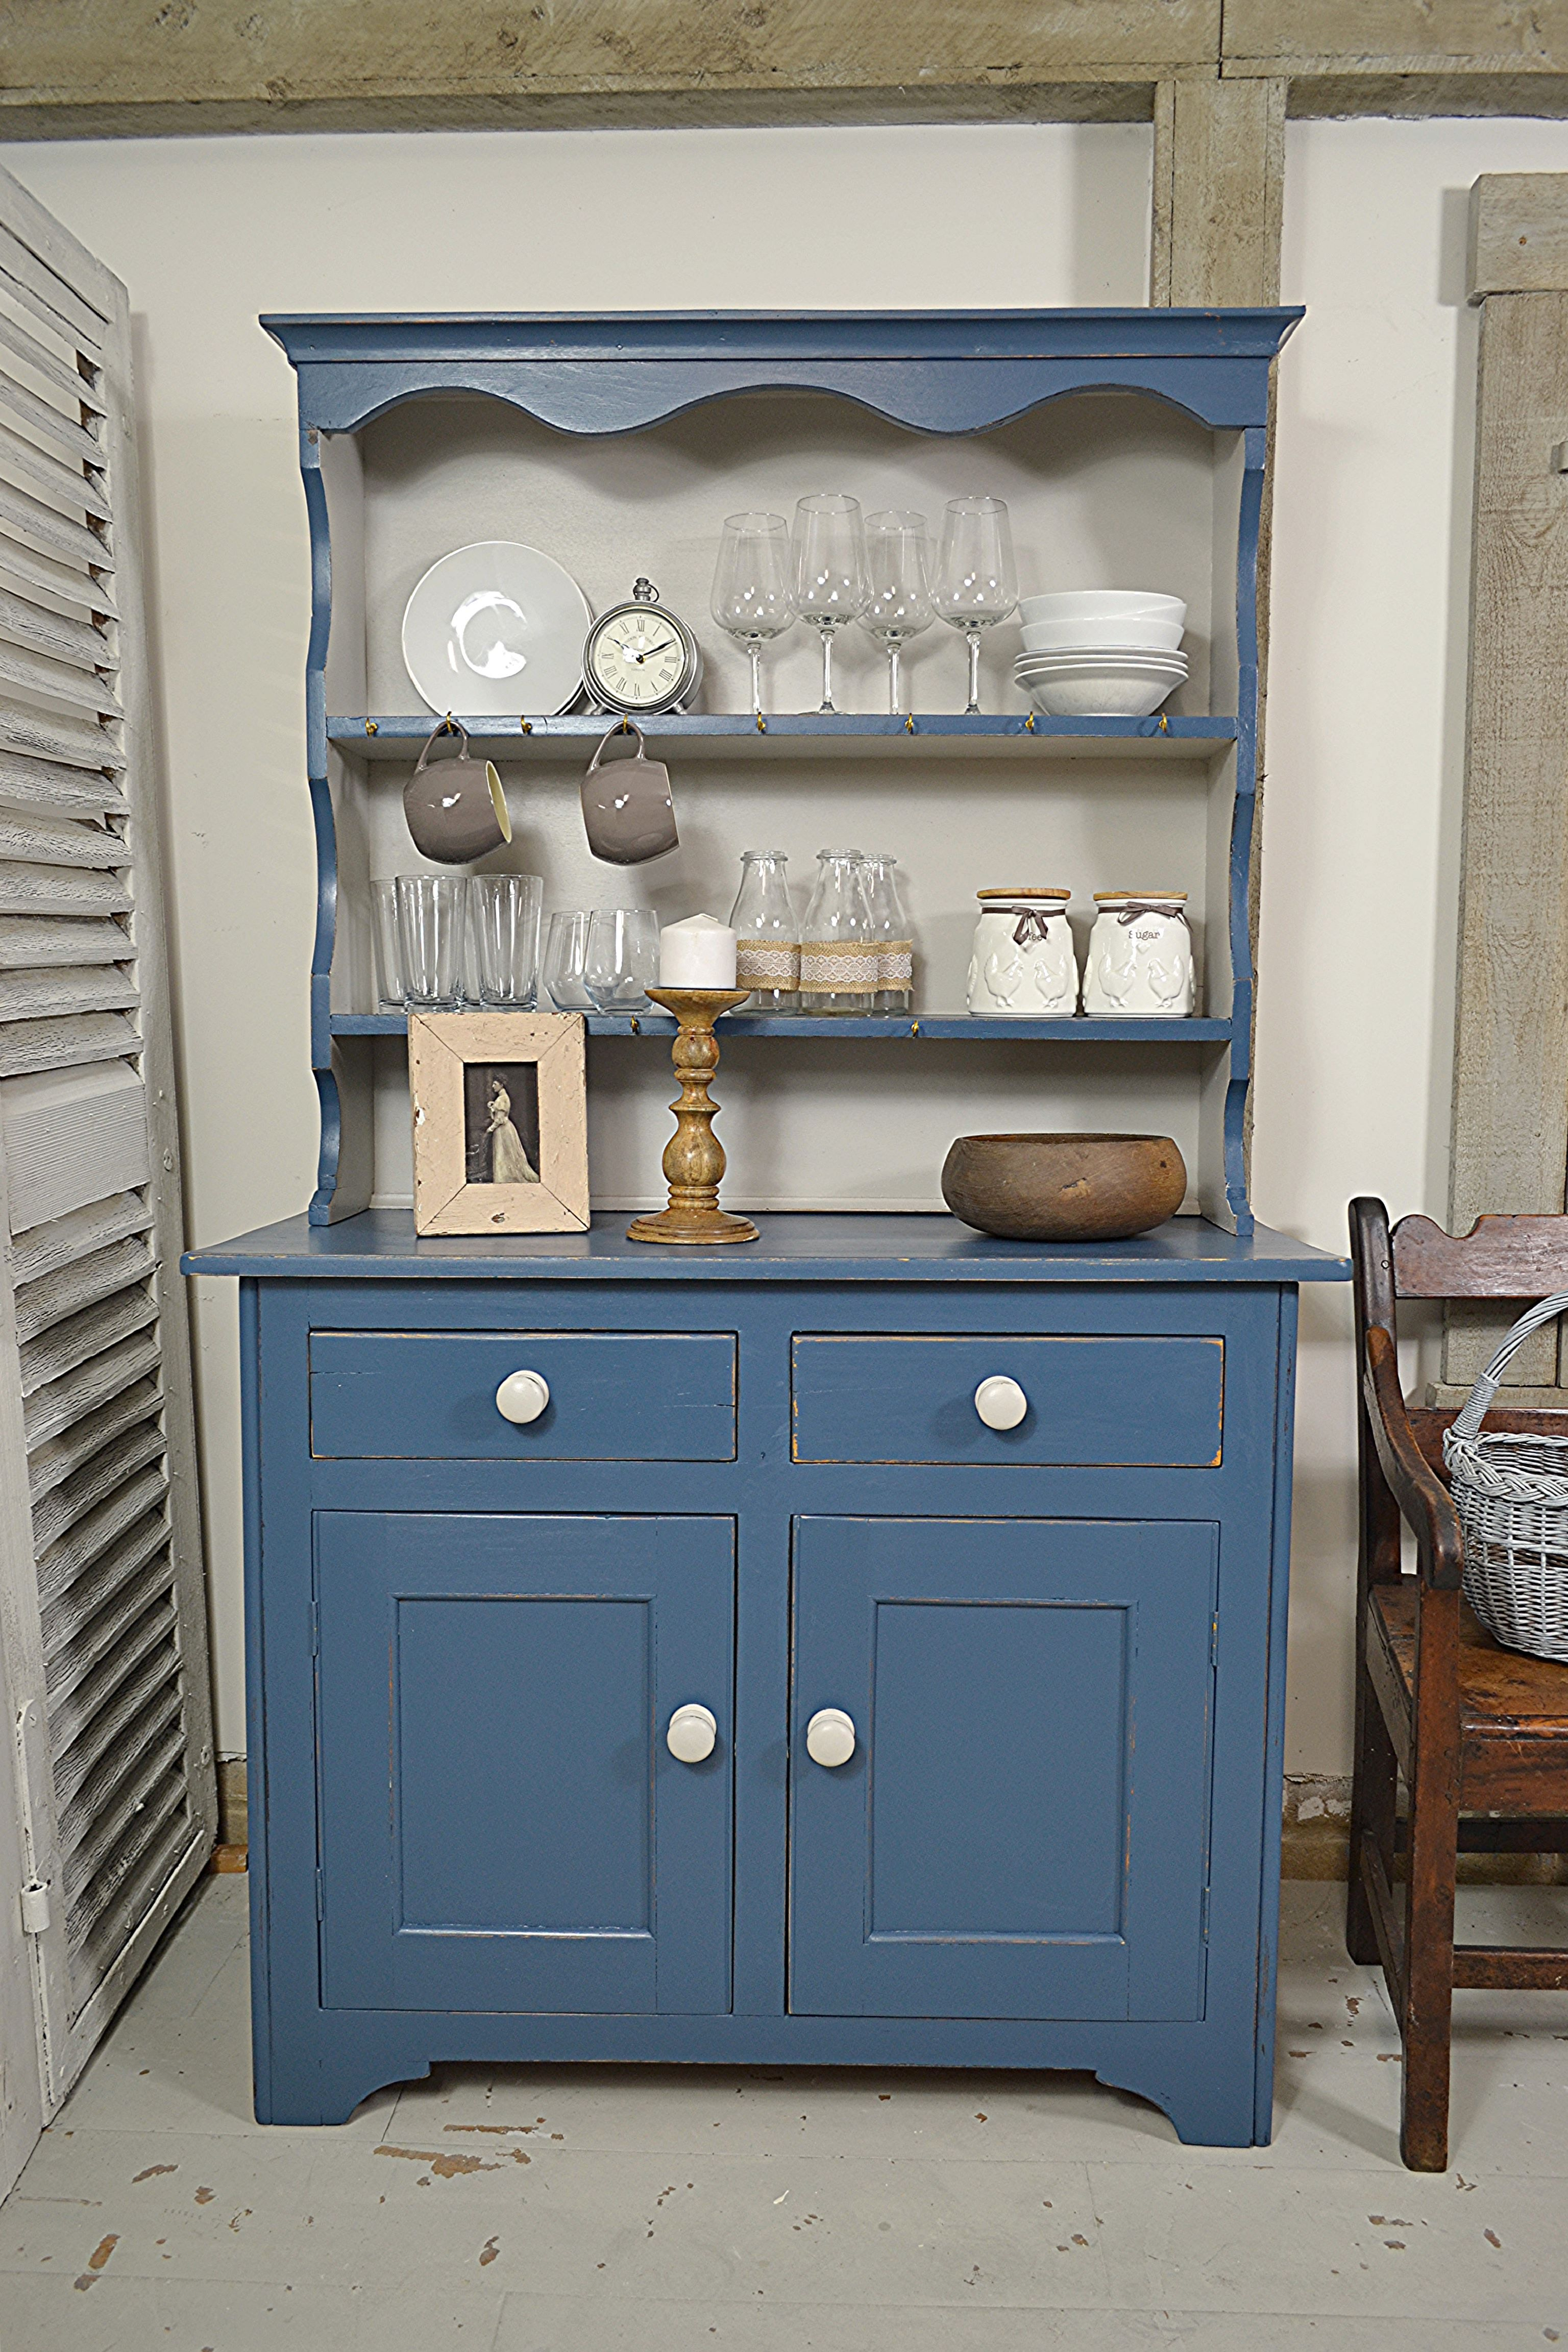 This small blue kitchen dresser is perfect for a small space we